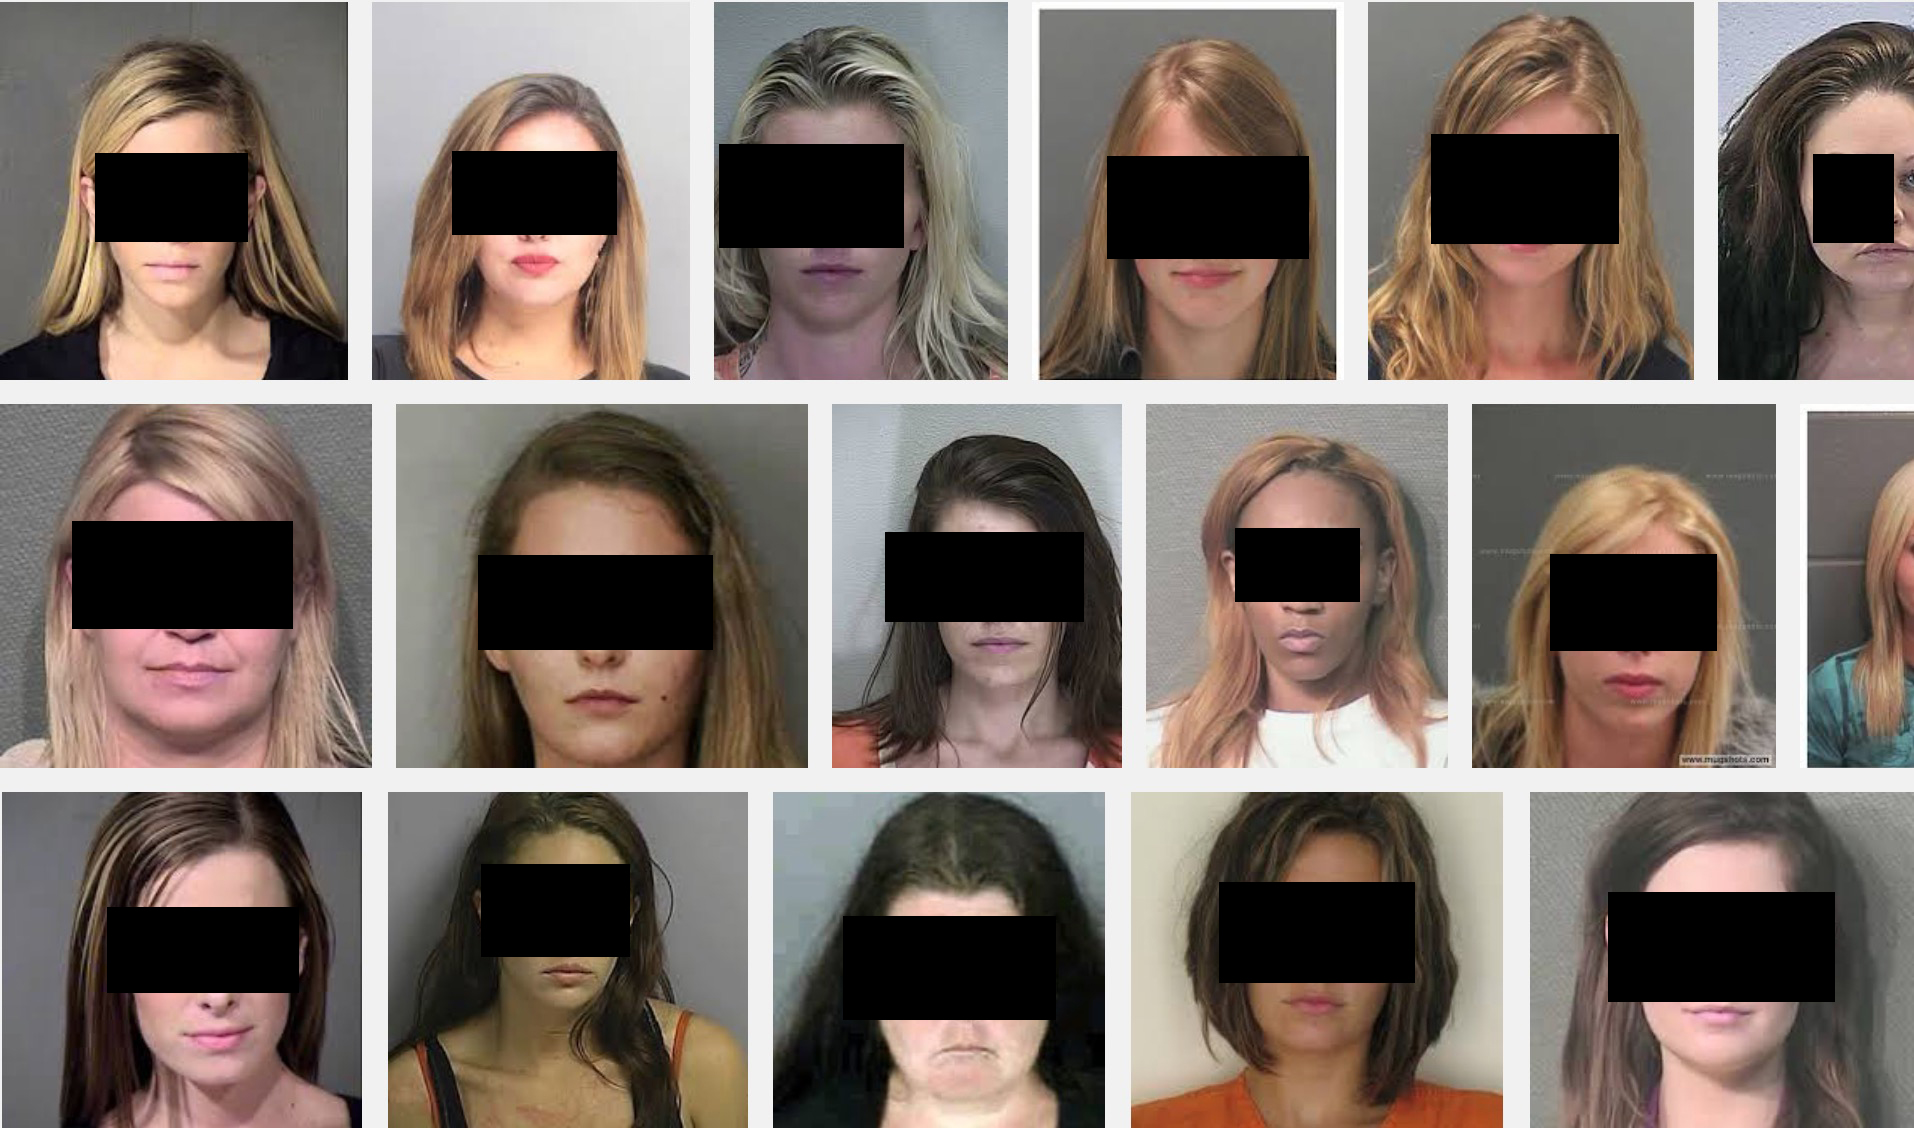 Alabama law bans publication of prostitution mugshots